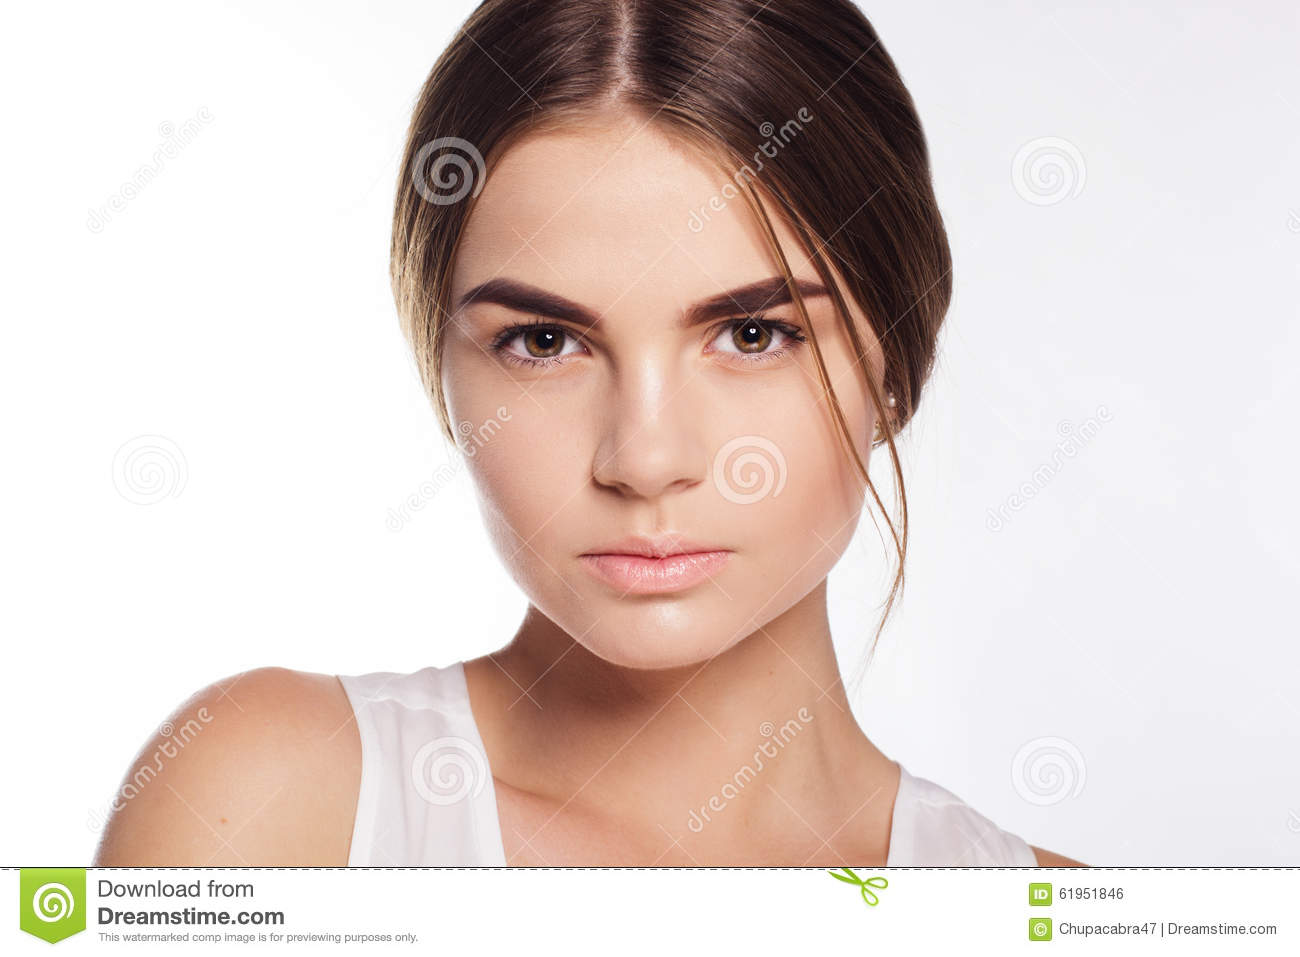 Face Of Girl With Light Makeup Stock Photo - Image 61951846-8443